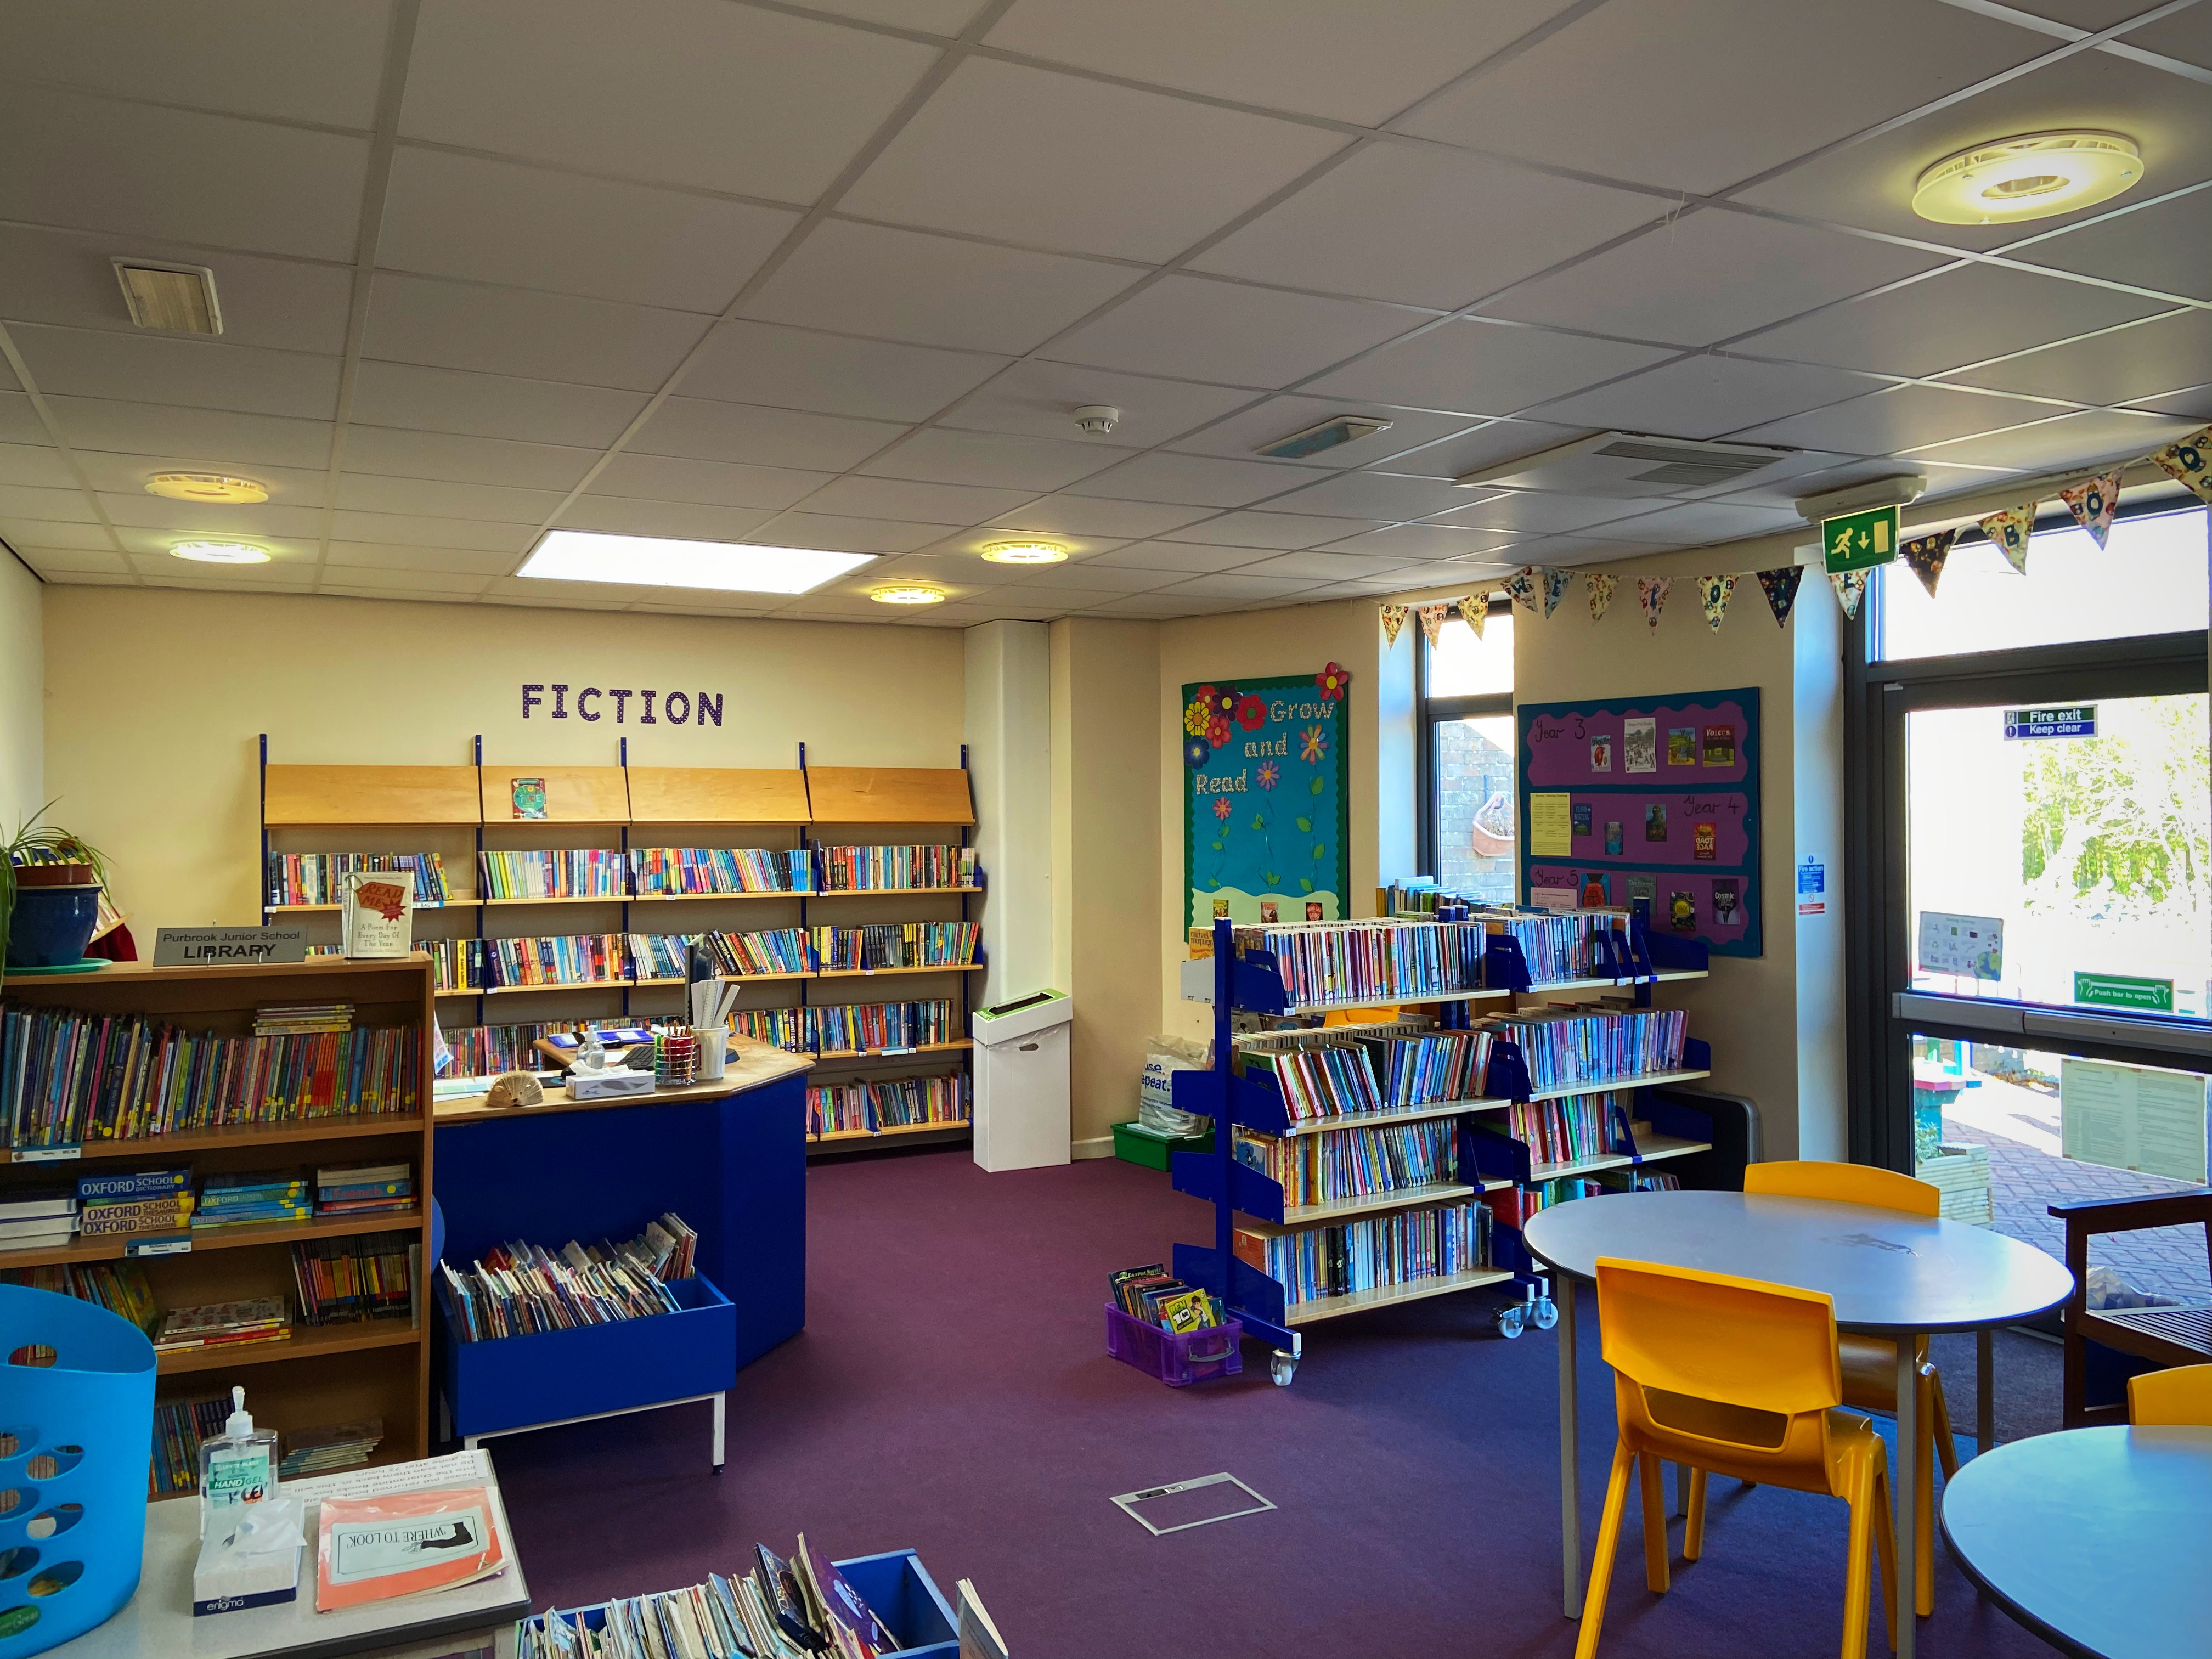 Our well-resourced and bright school library